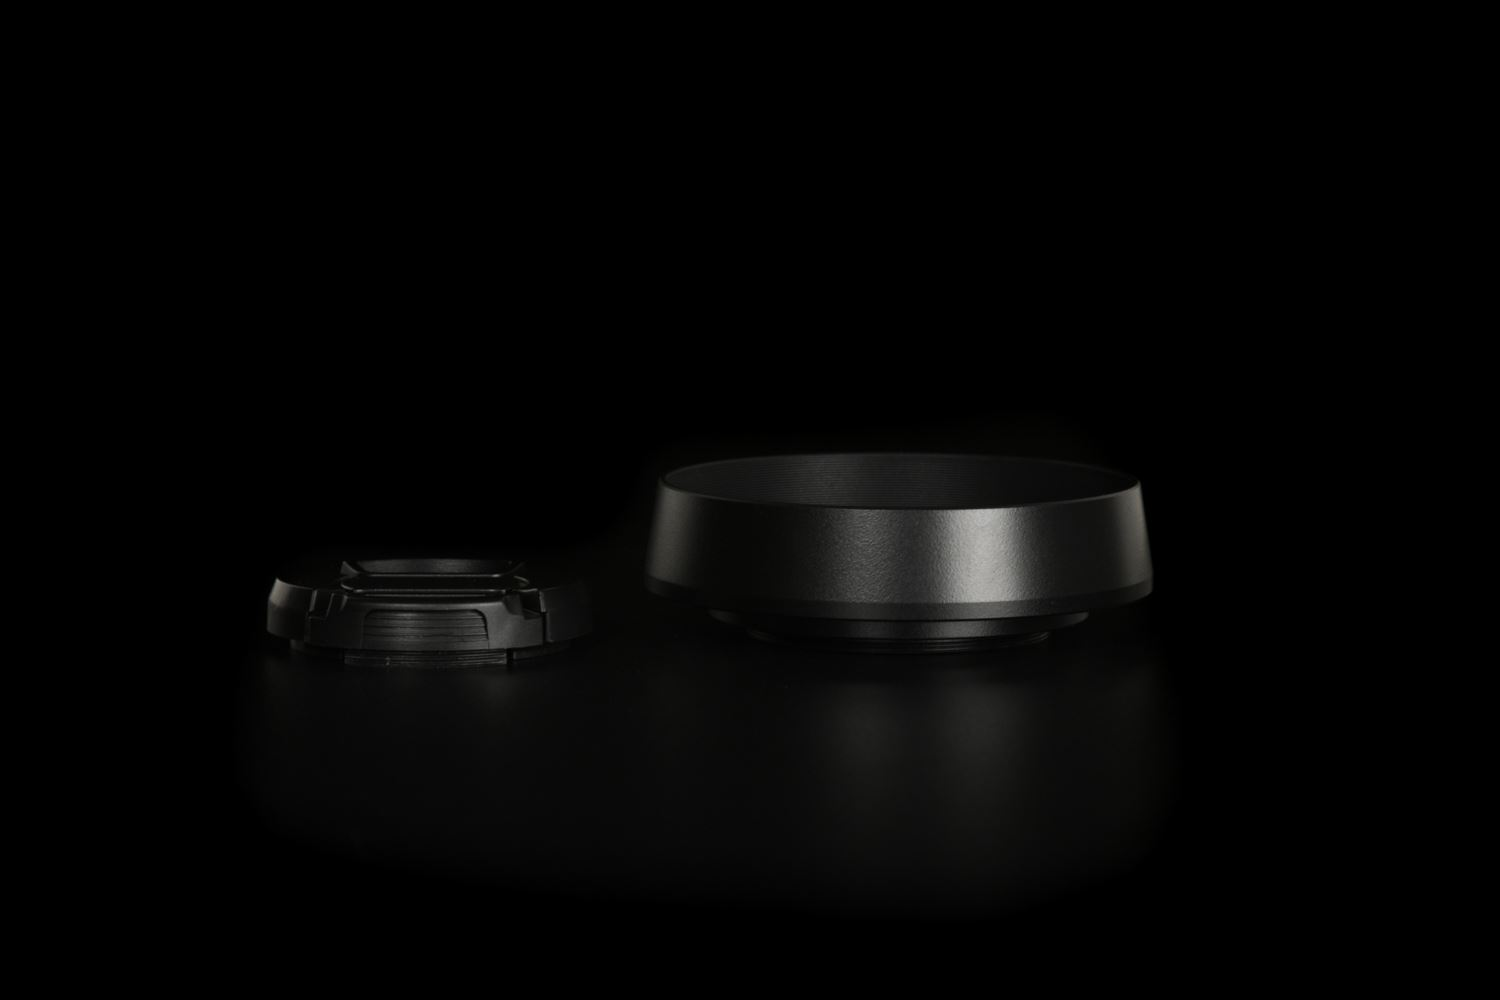 Picture of Black Ventilated Lens Hood made for Leica E39 lenses